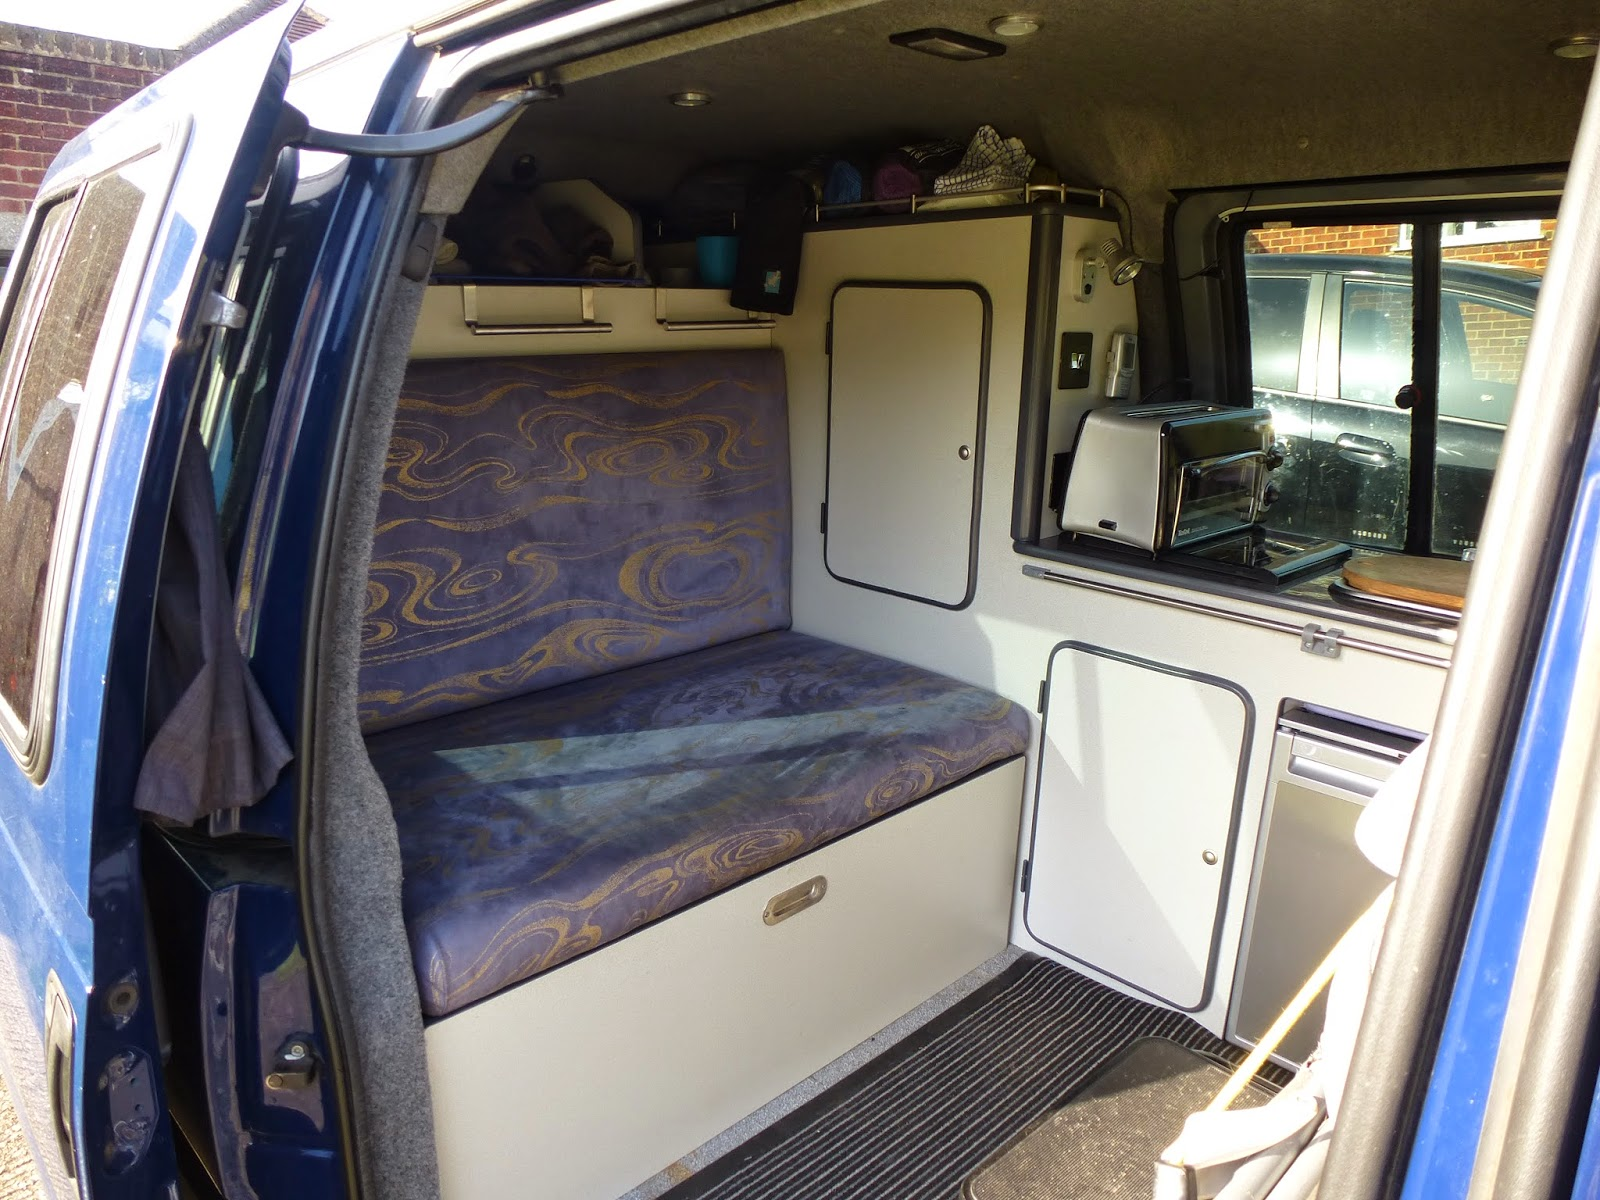 peugeot expert 806 scudo dispatch conversion april 2015. Black Bedroom Furniture Sets. Home Design Ideas